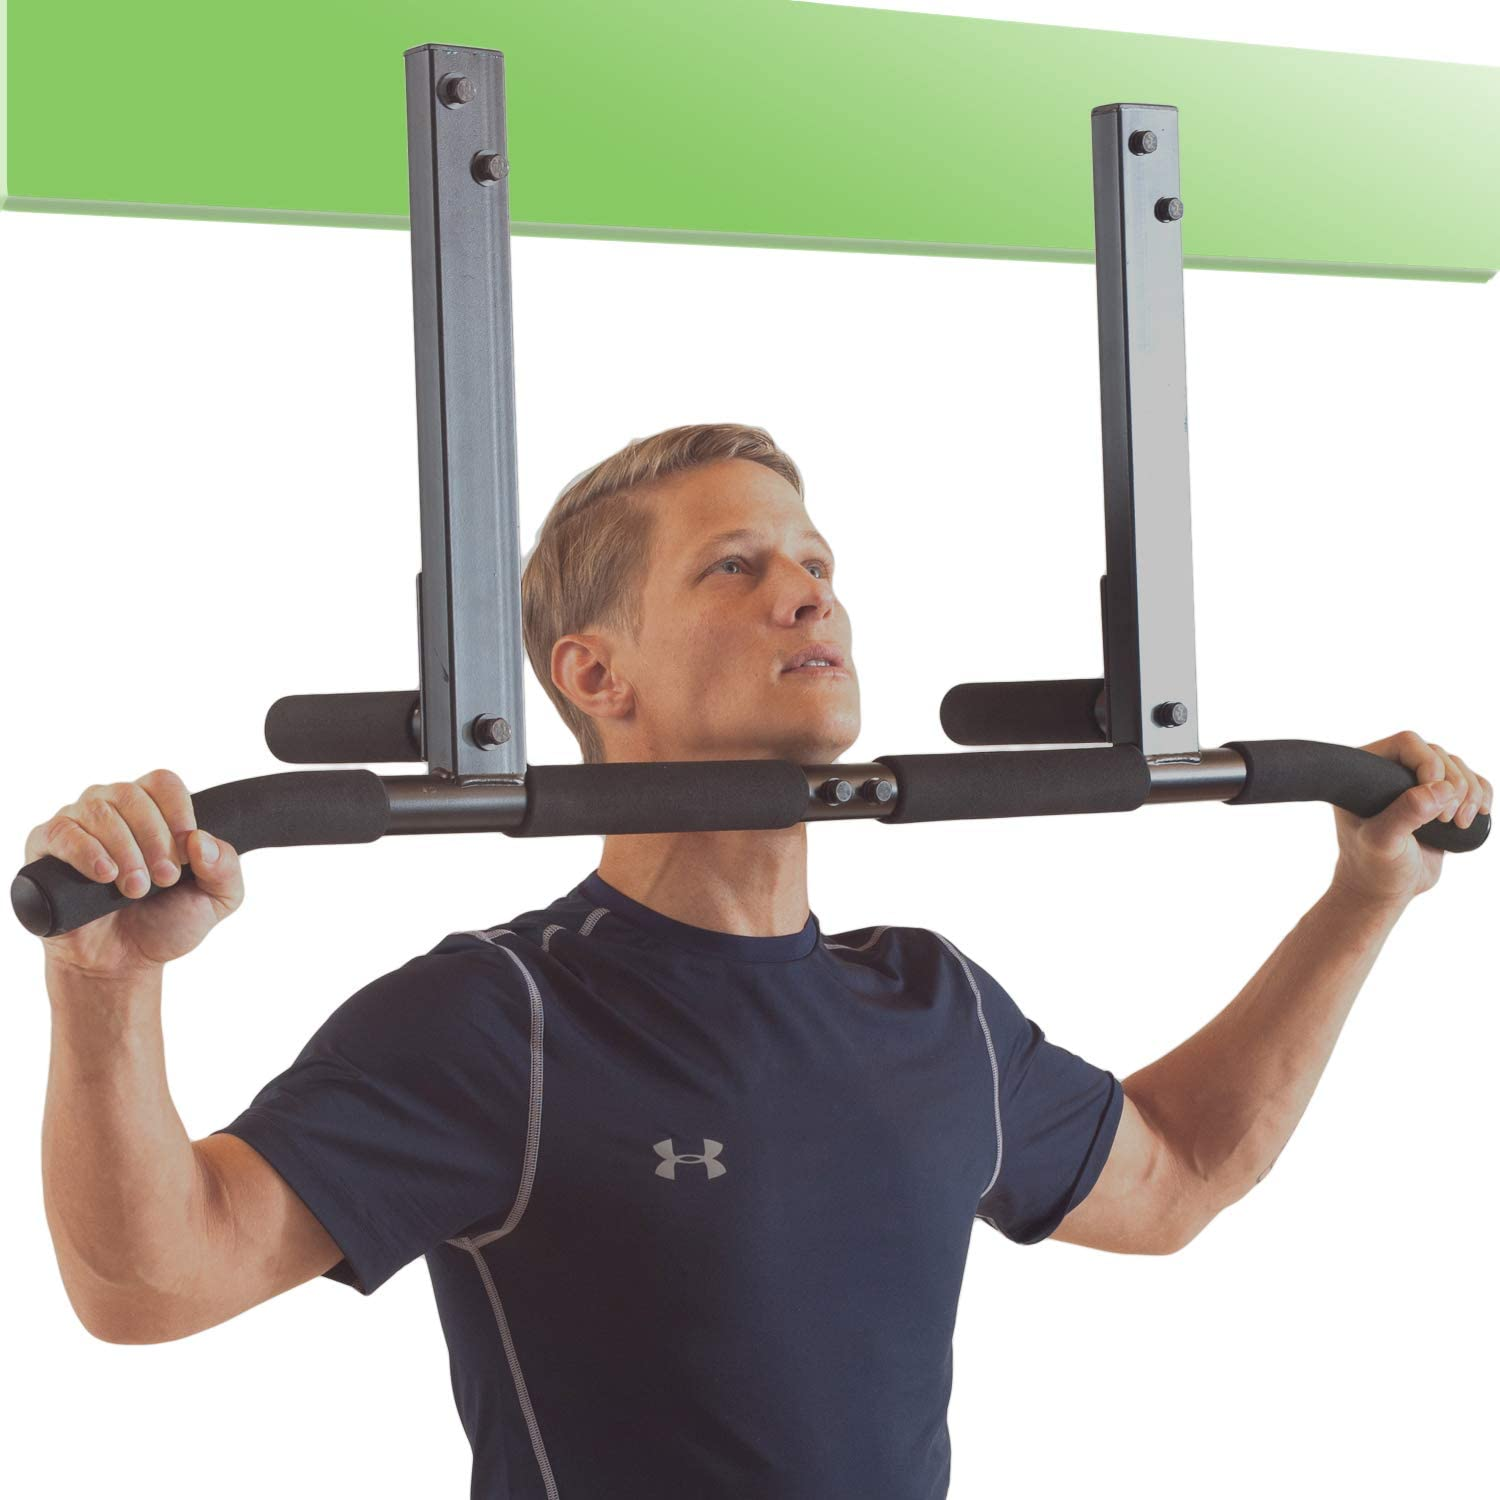 Joist Mount Pull Up Bar & Product Bundles by Ultimate Body Press